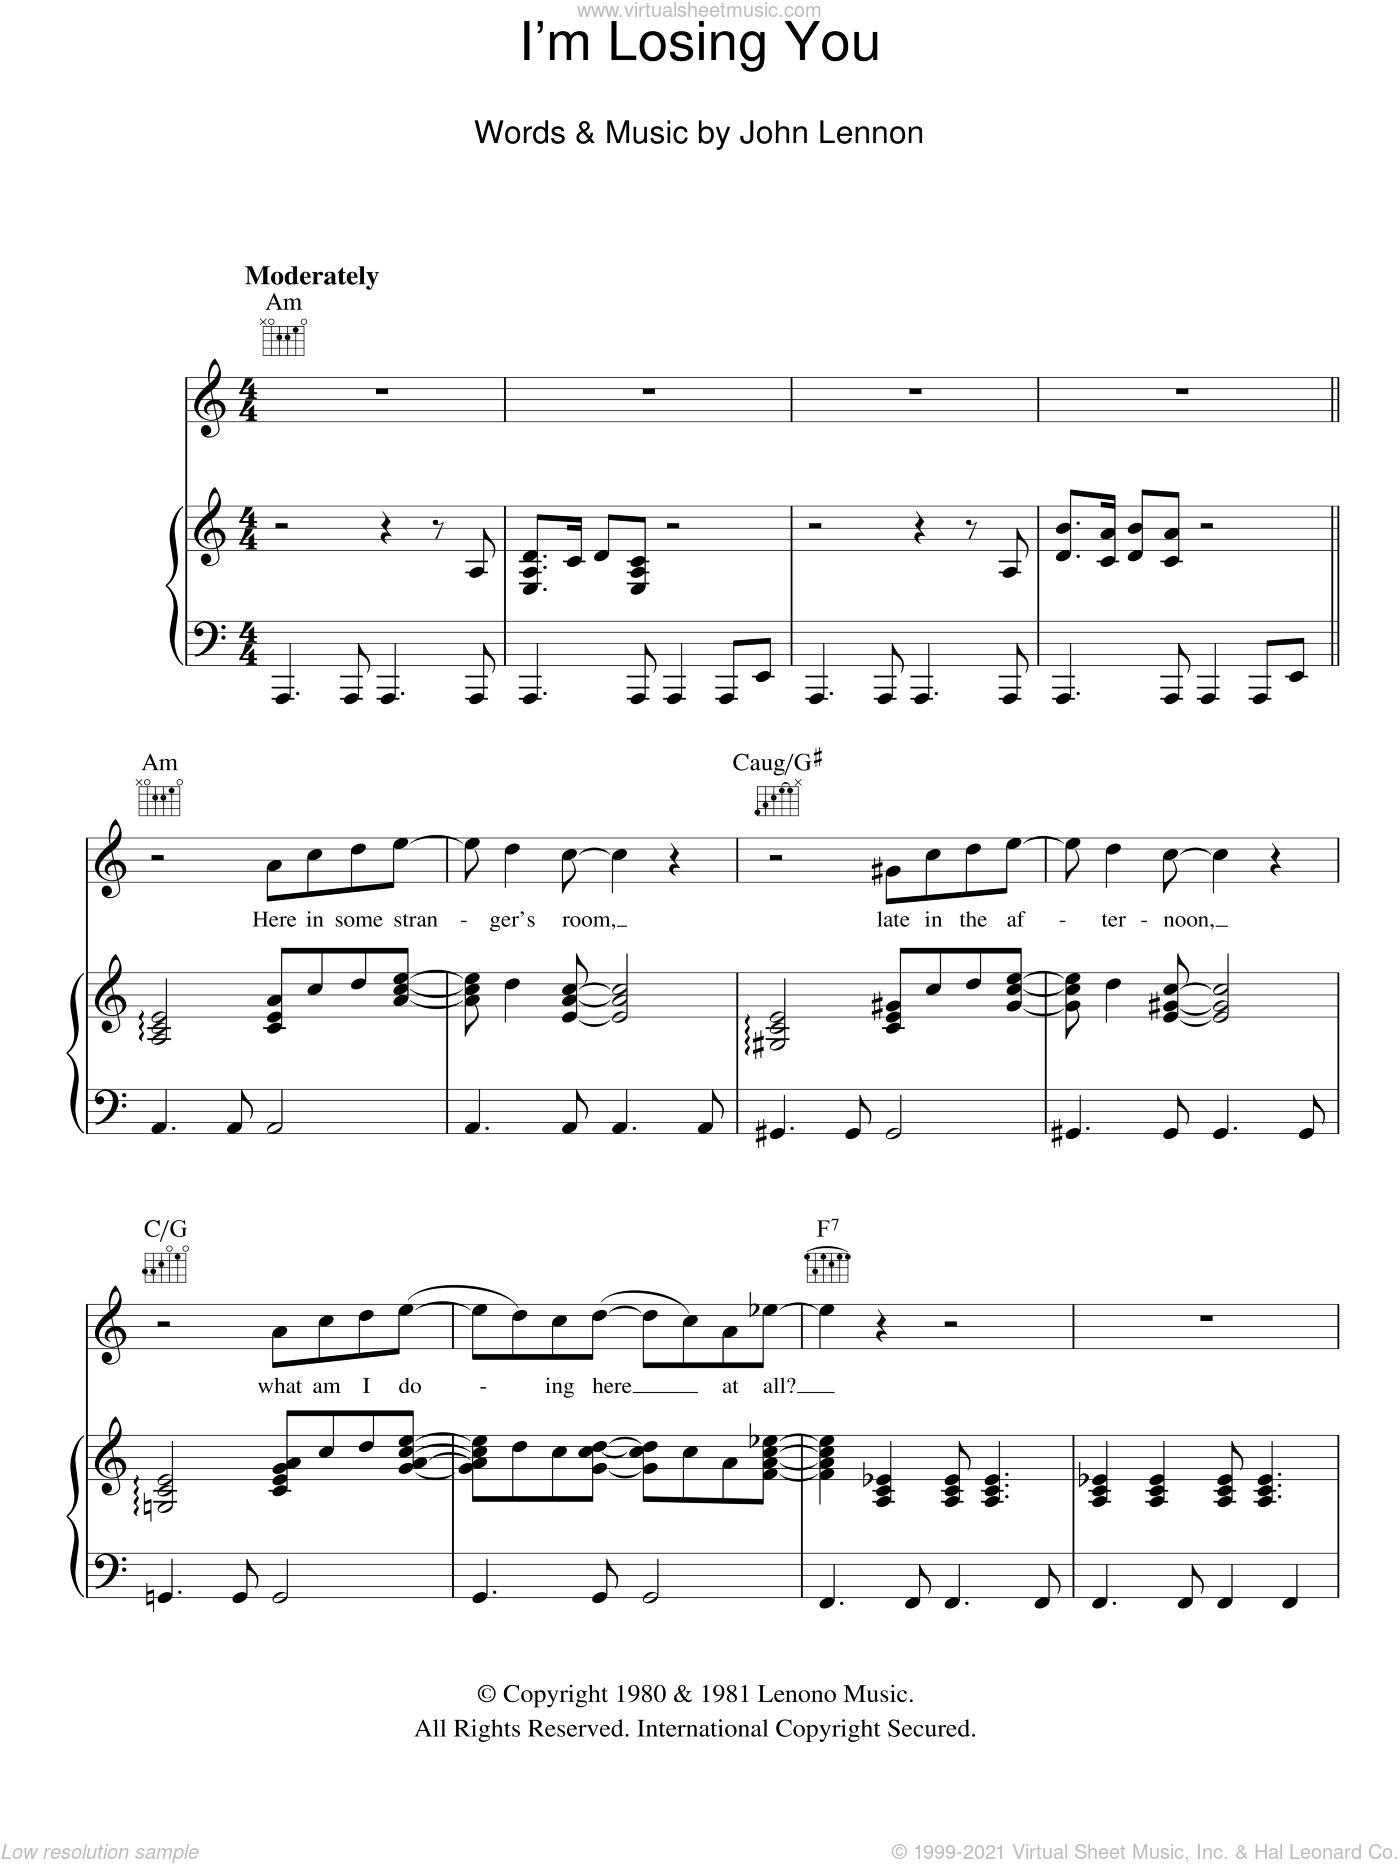 I'm Losing You sheet music for voice, piano or guitar by John Lennon. Score Image Preview.